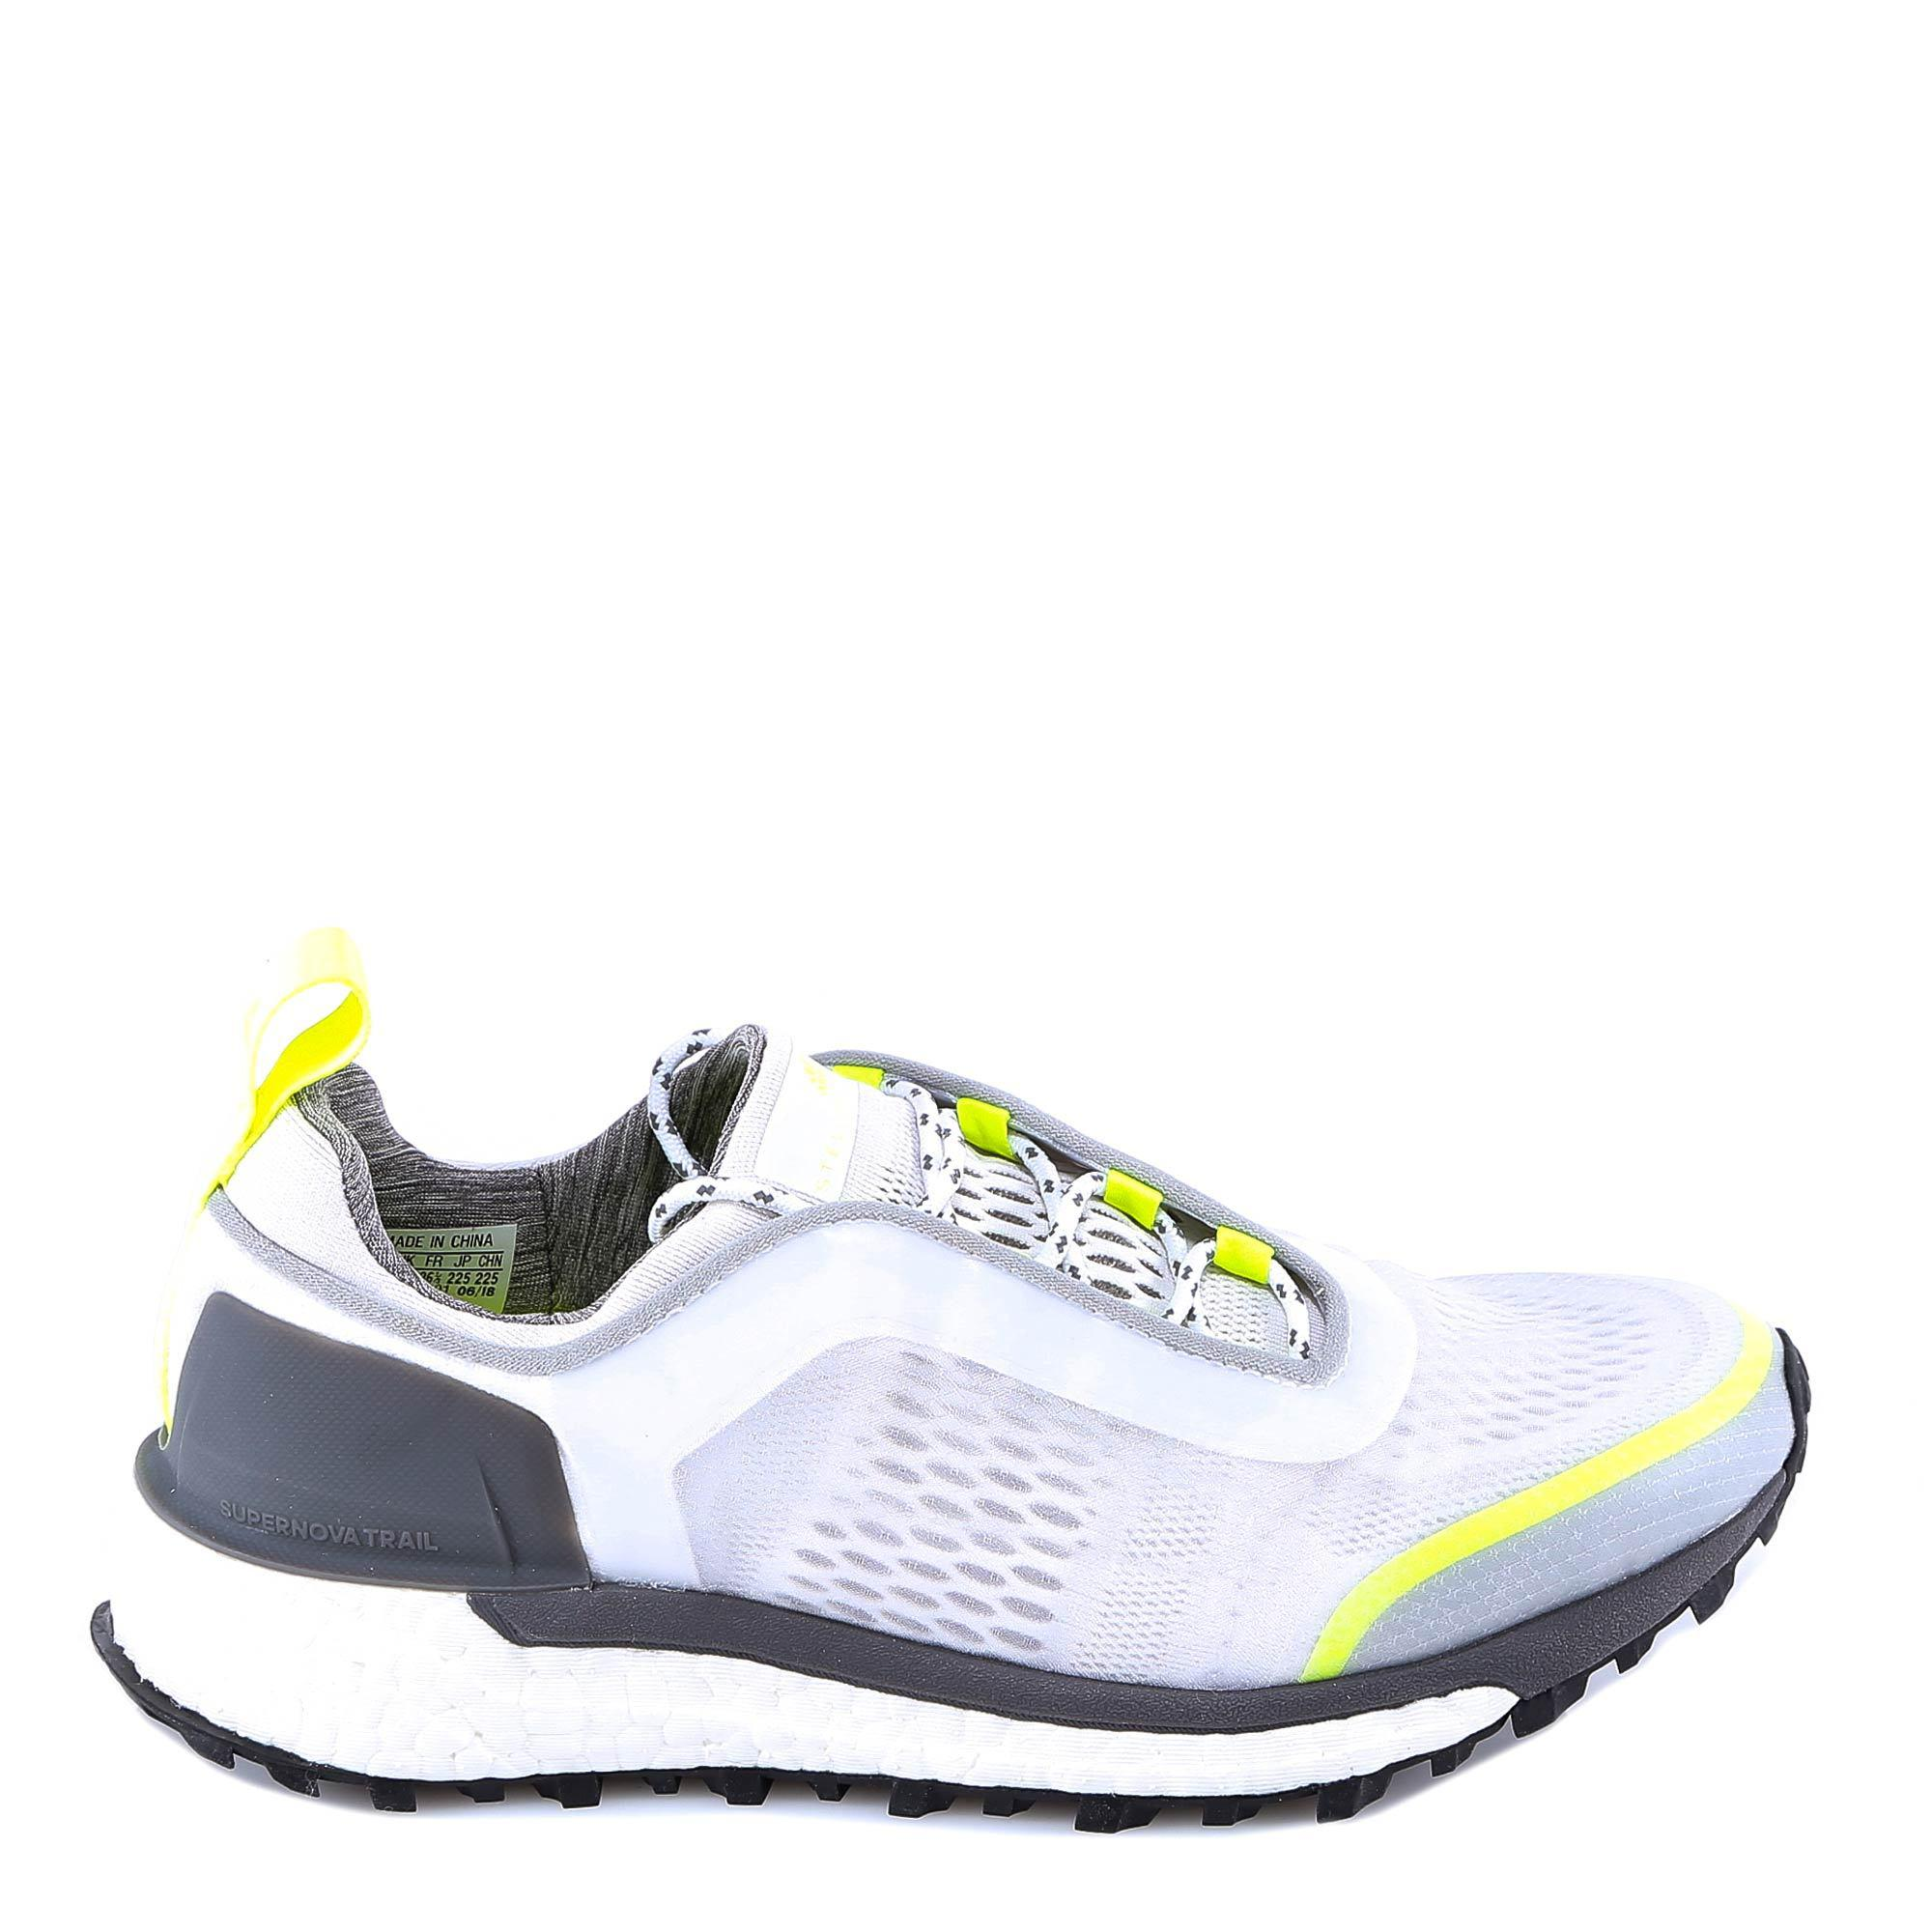 3be262f999a59 Lyst - adidas By Stella McCartney Supernova Trail Sneakers in White